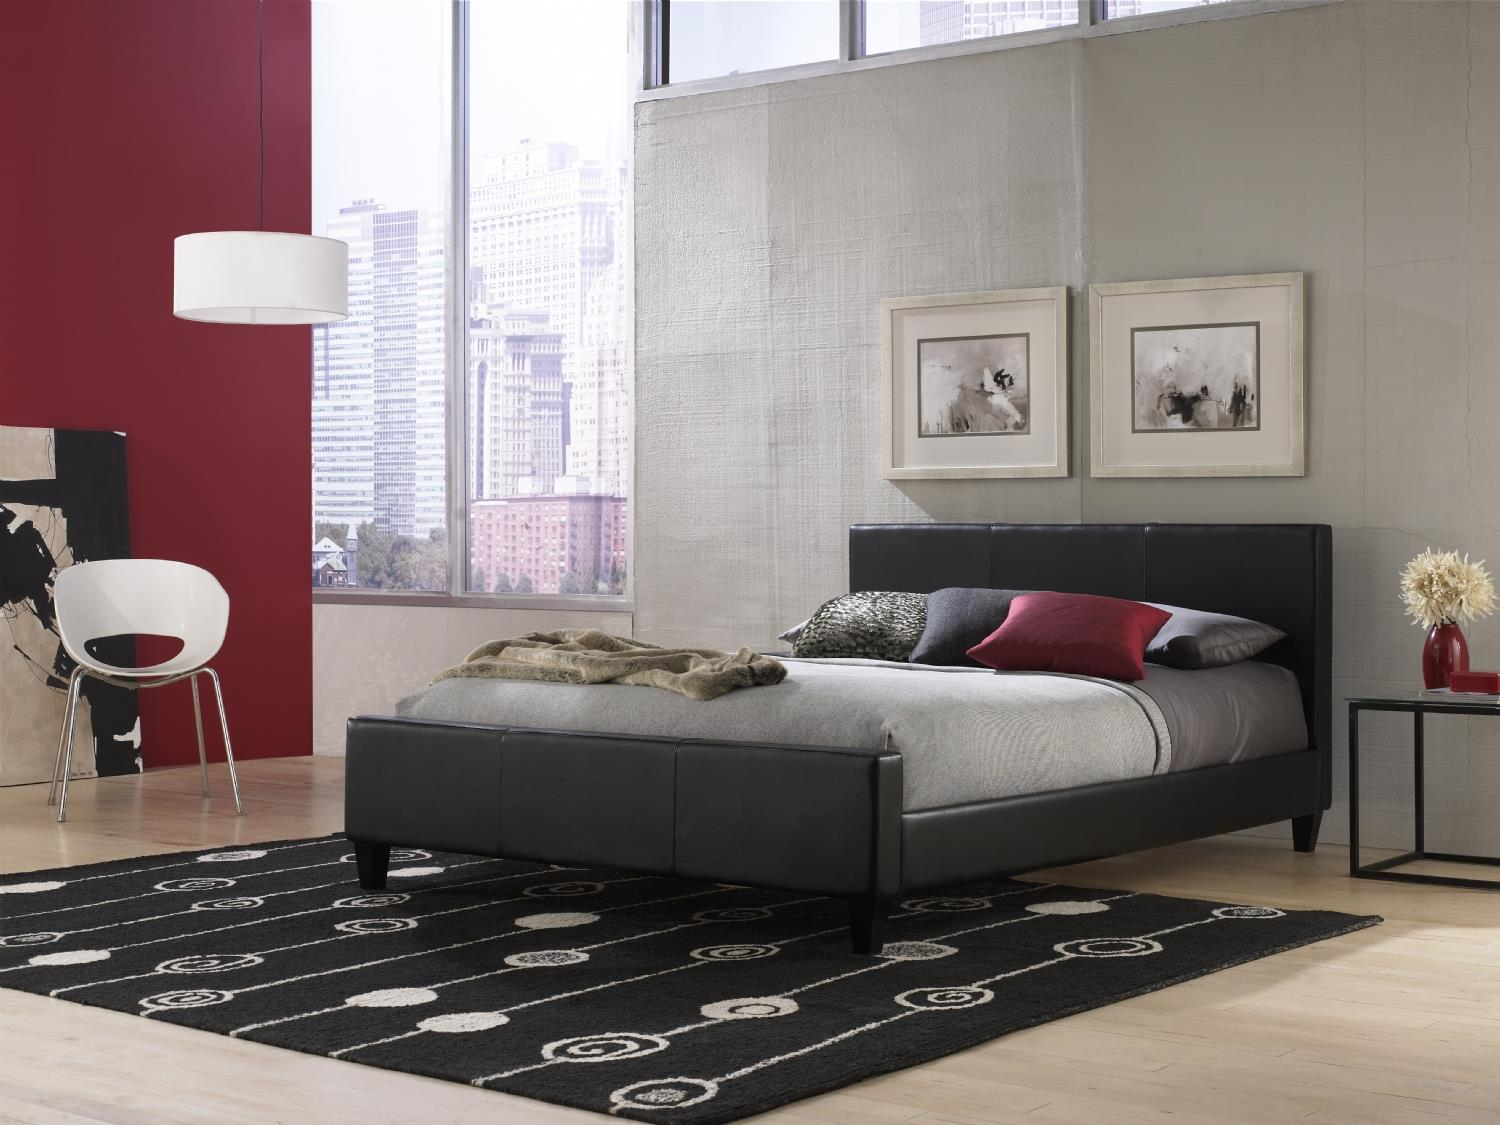 Fashion Bed Group Euro Full Bed - Item Number: D79227145